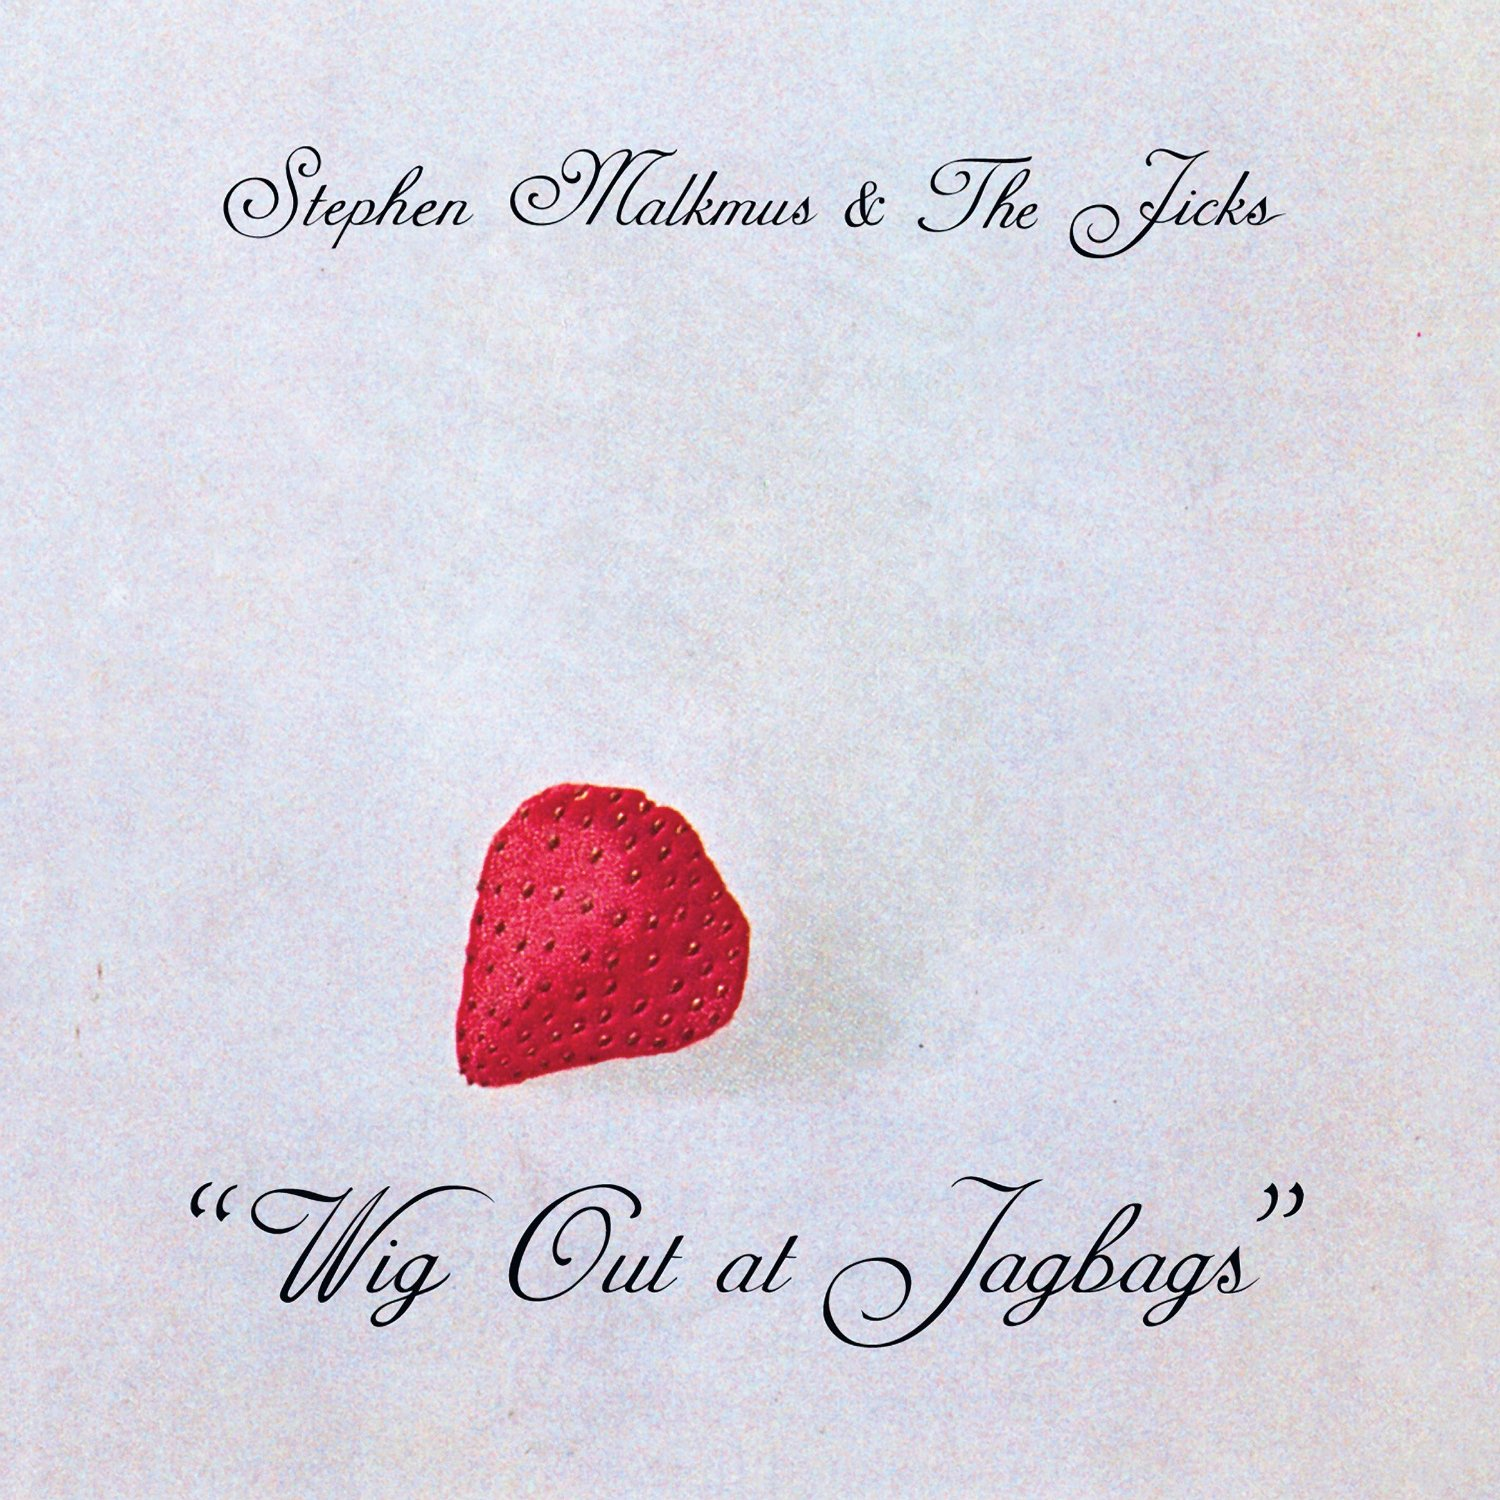 Stephen Malkmus And The Jicks' album, Wig Out At Jagbags, is out now.